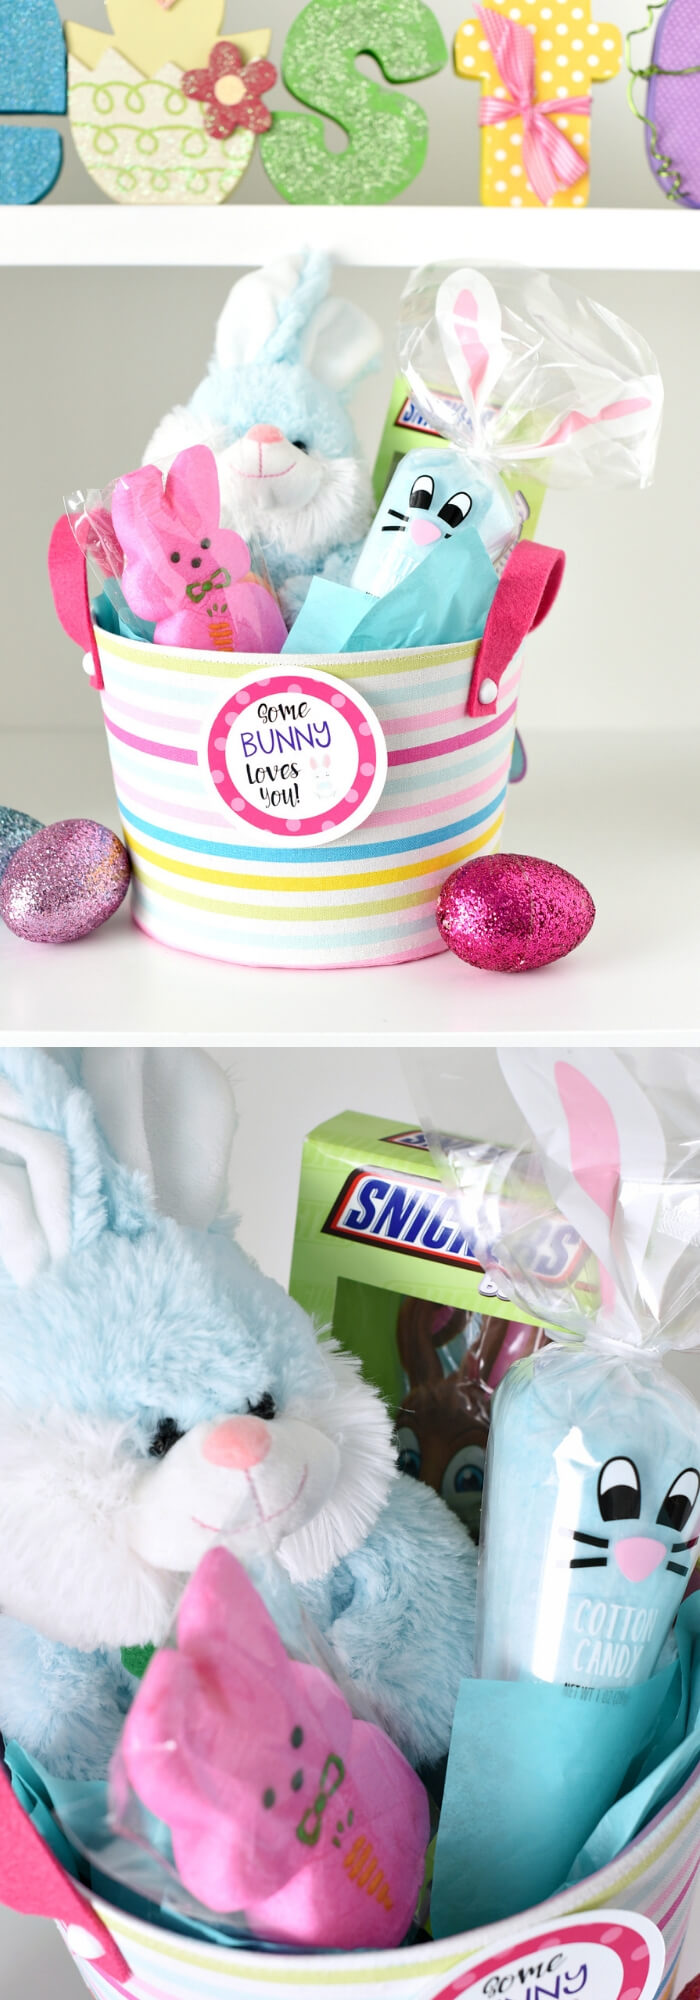 Bunny Easter basket | Fun & Creative Easter Basket Ideas